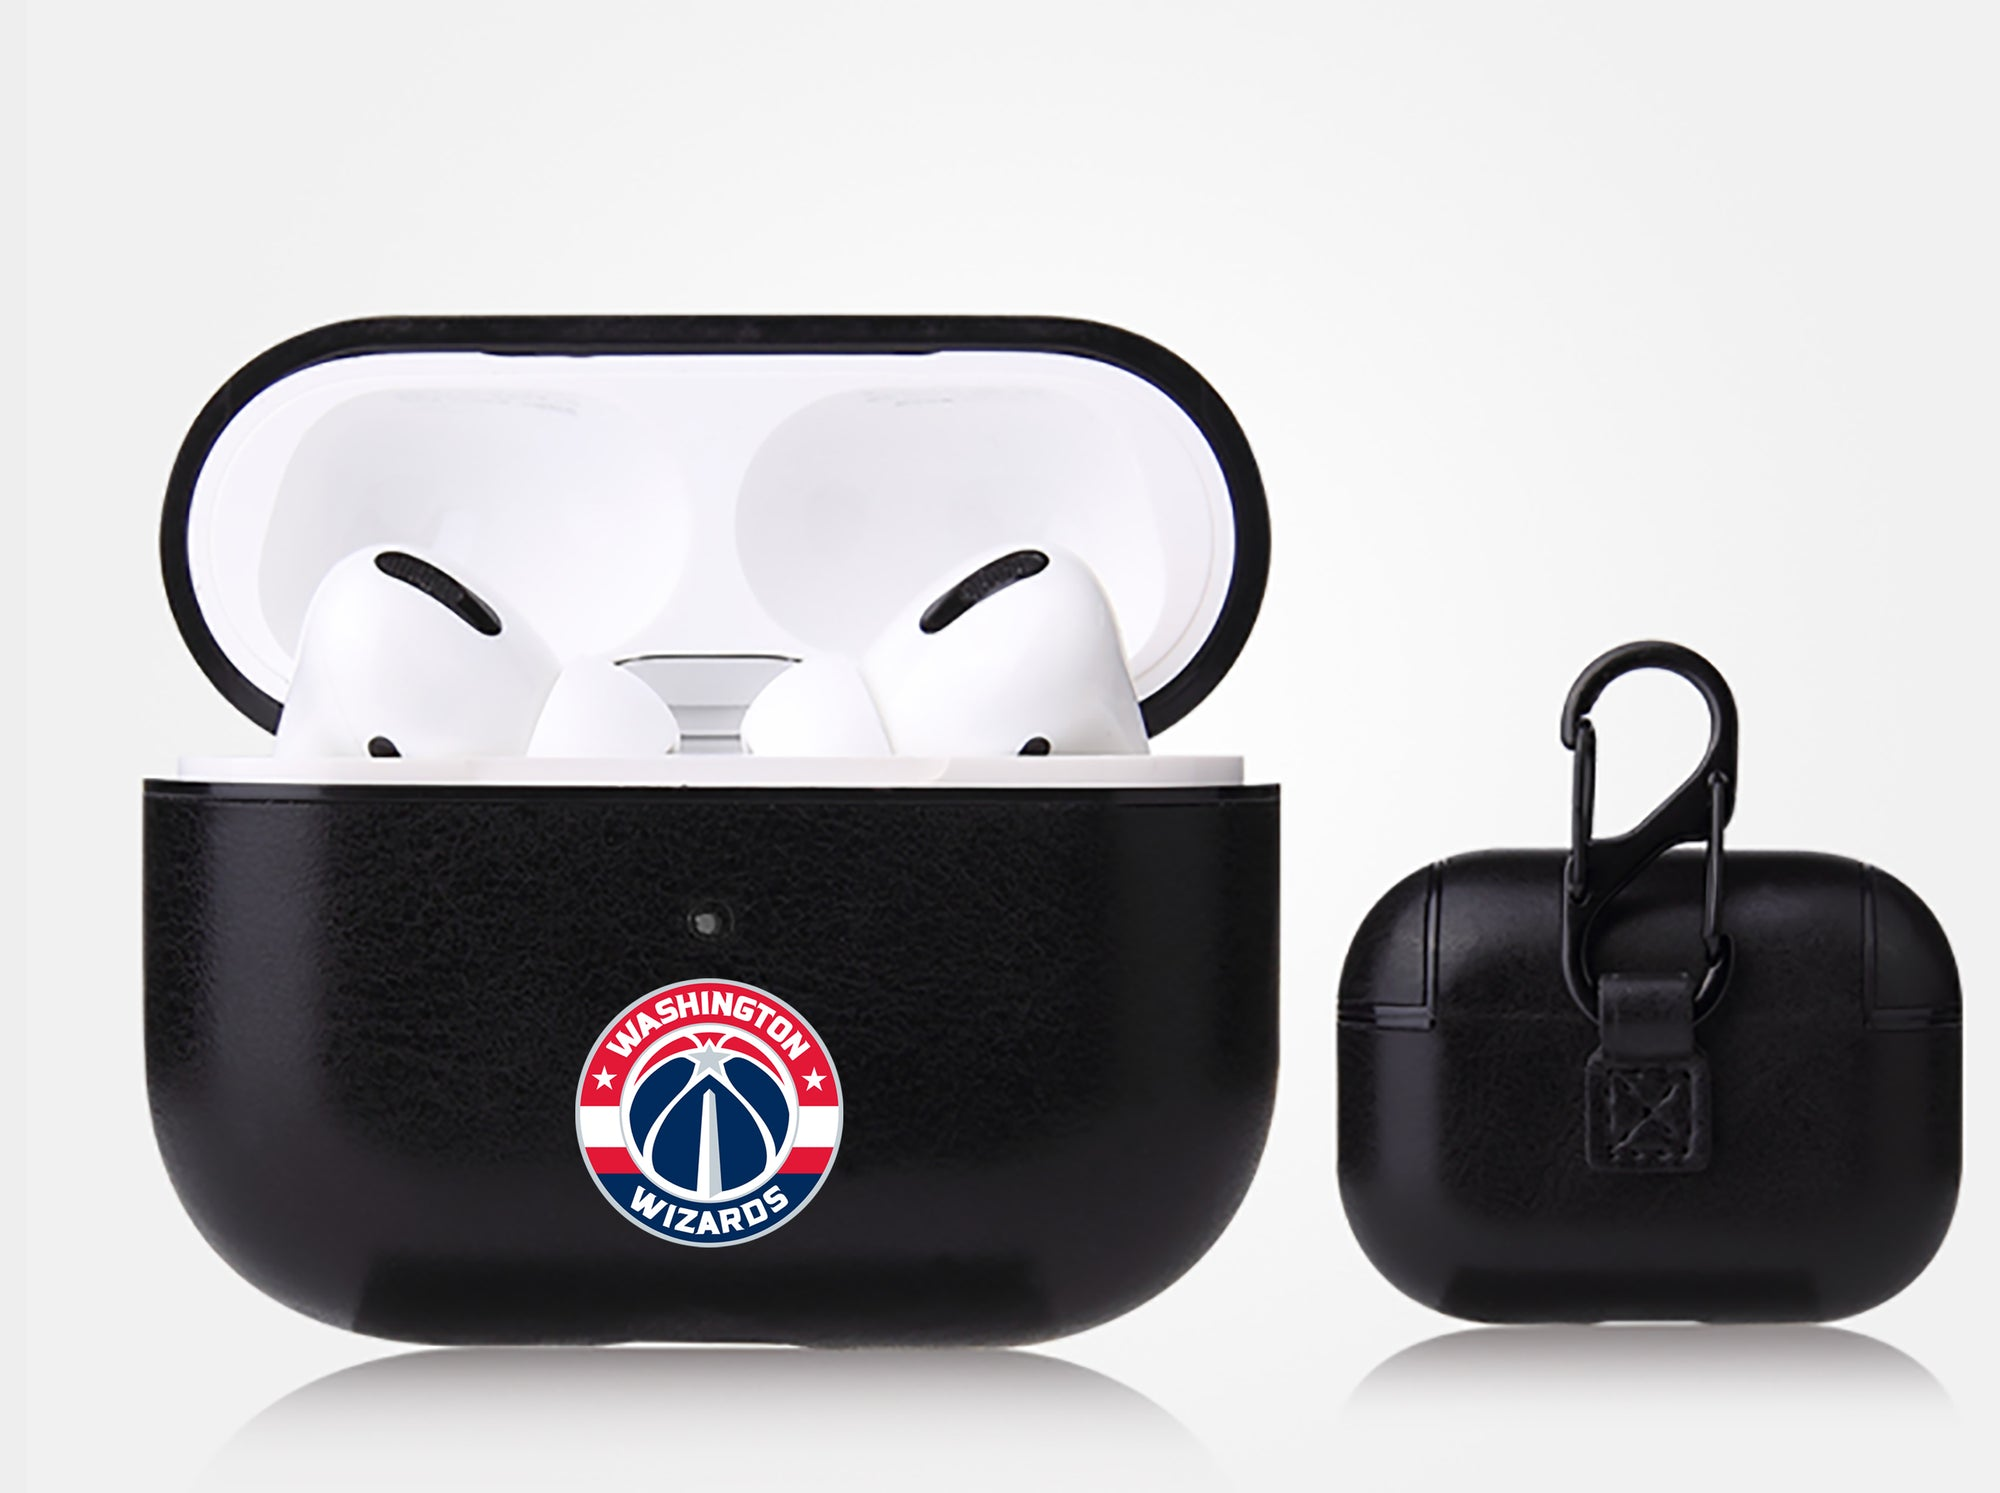 Washington Wizards Black Apple Air Pod Pro Leatherette